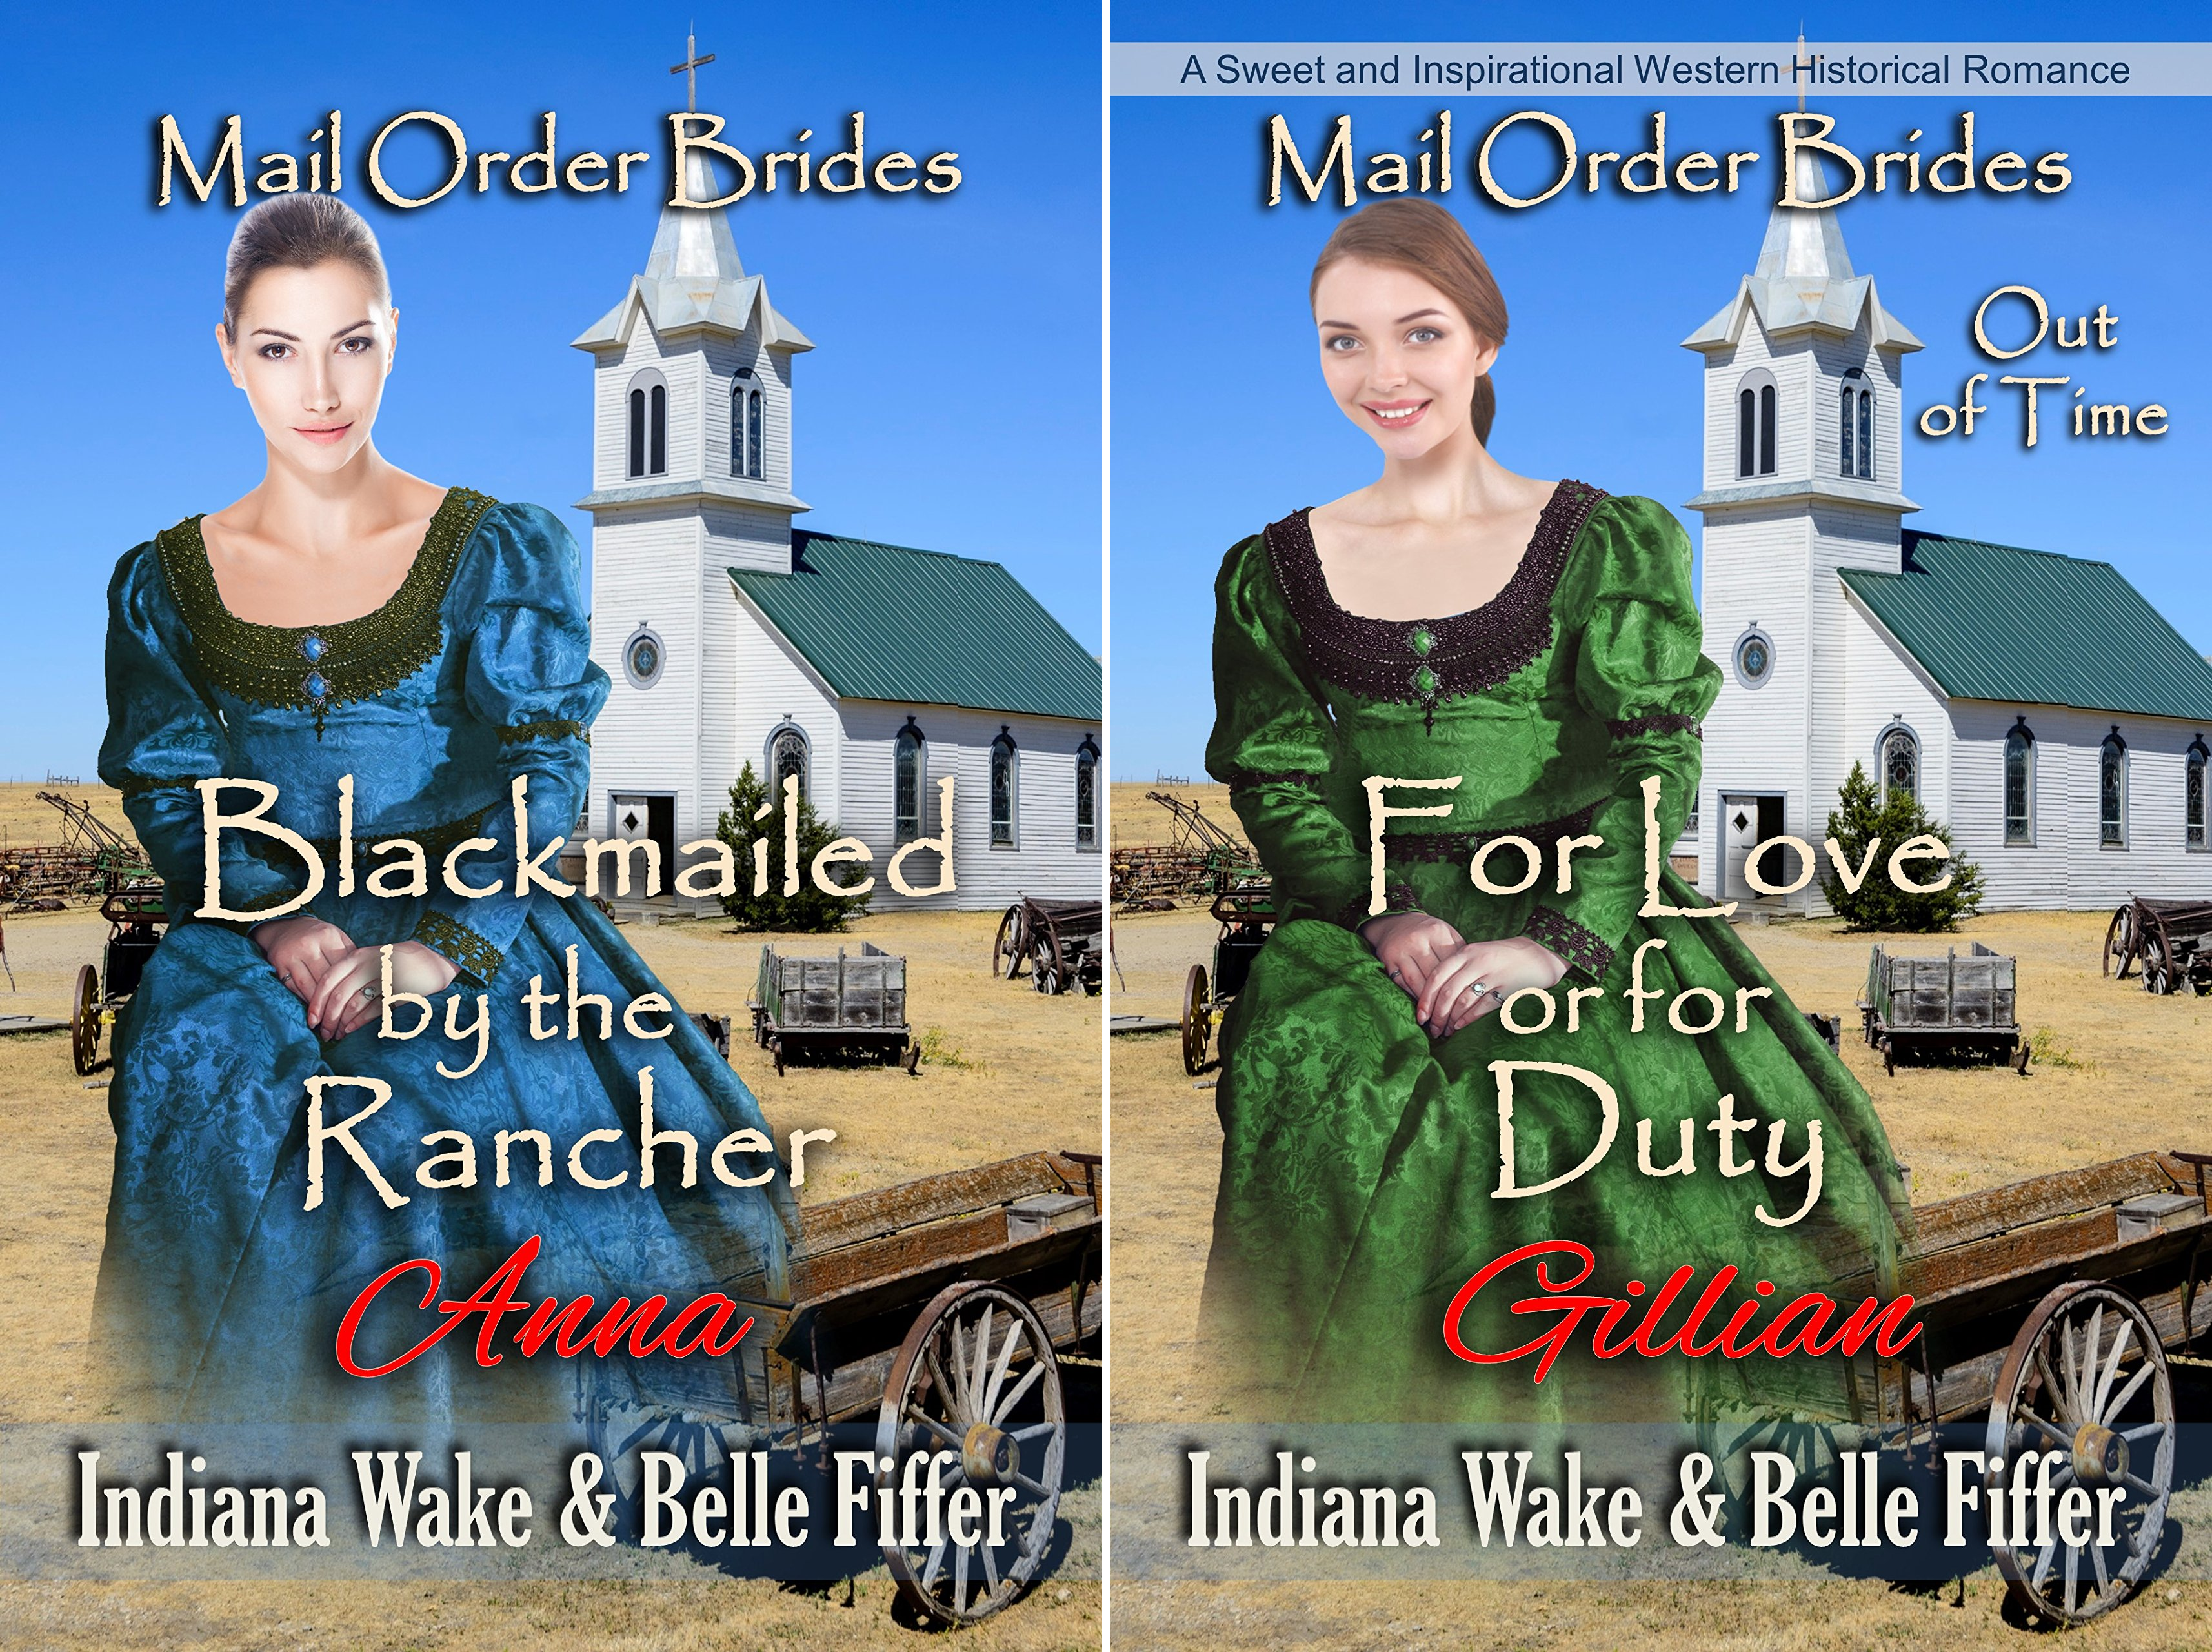 Mail Order Brides Out of Time (2 Book Series)